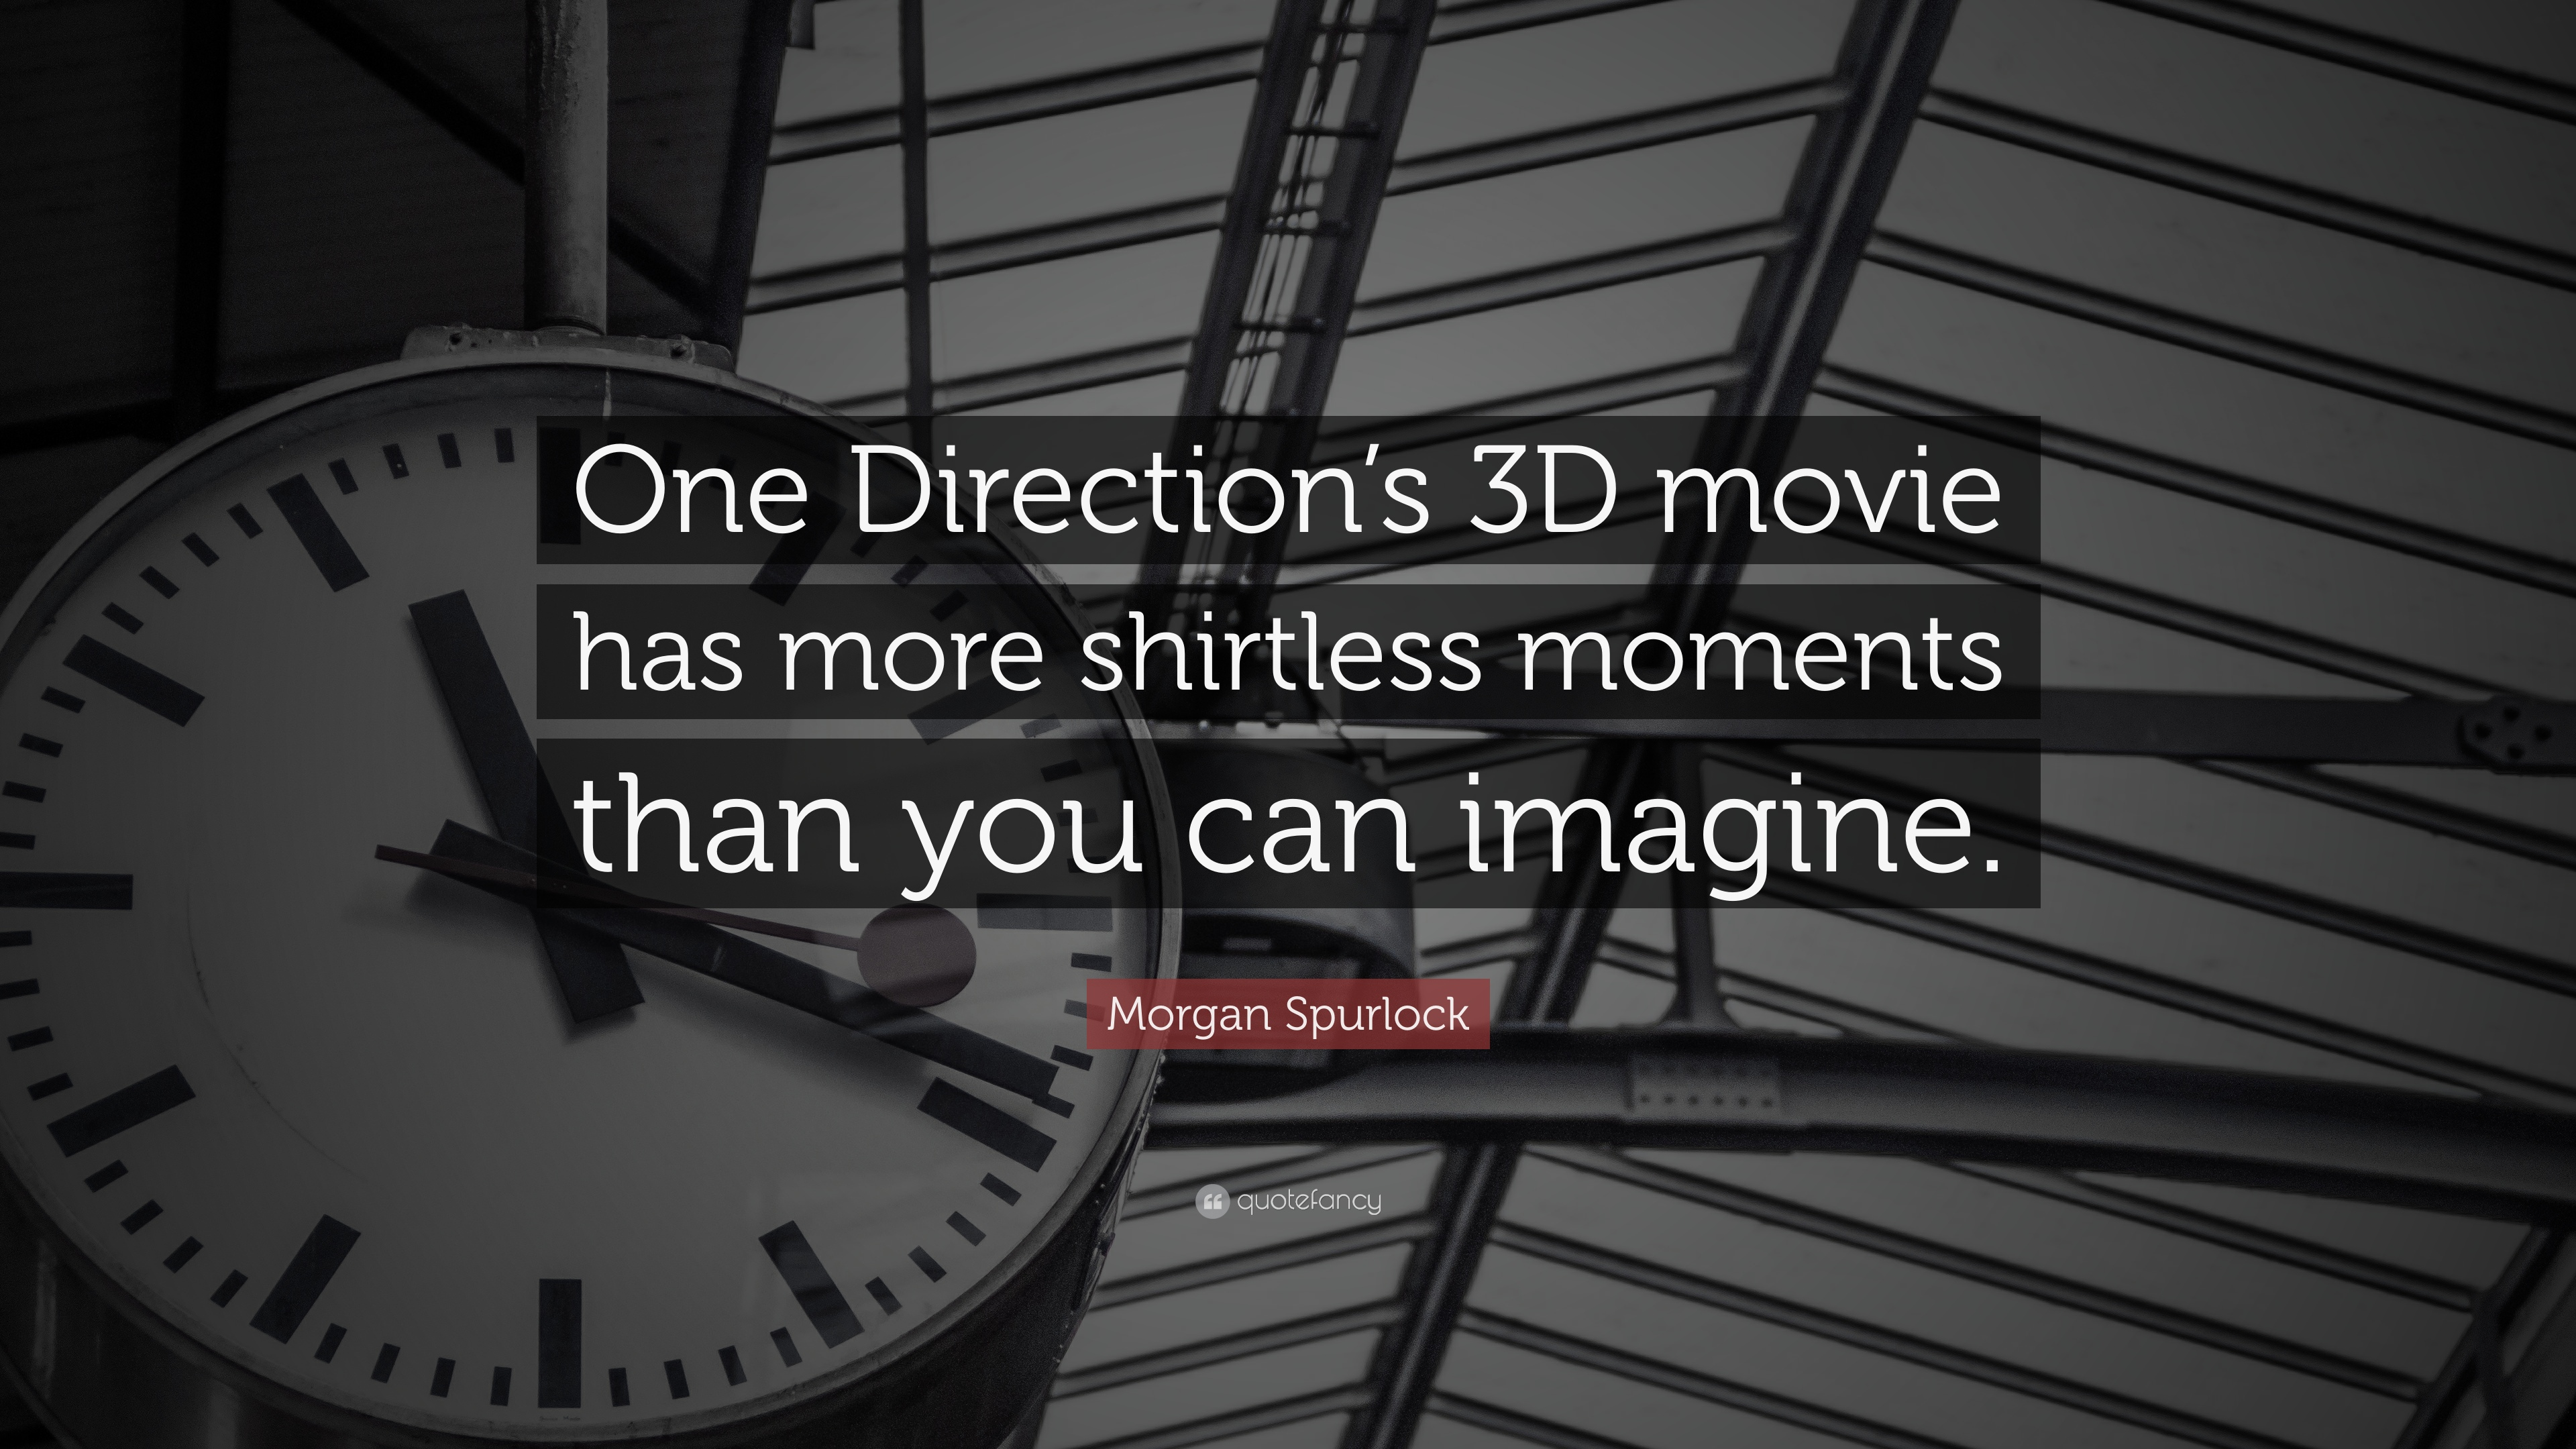 Image of: Infinity Morgan Spurlock Quote one Directions 3d Movie Has More Shirtless Moments Than You Can Quotefancy Morgan Spurlock Quote one Directions 3d Movie Has More Shirtless